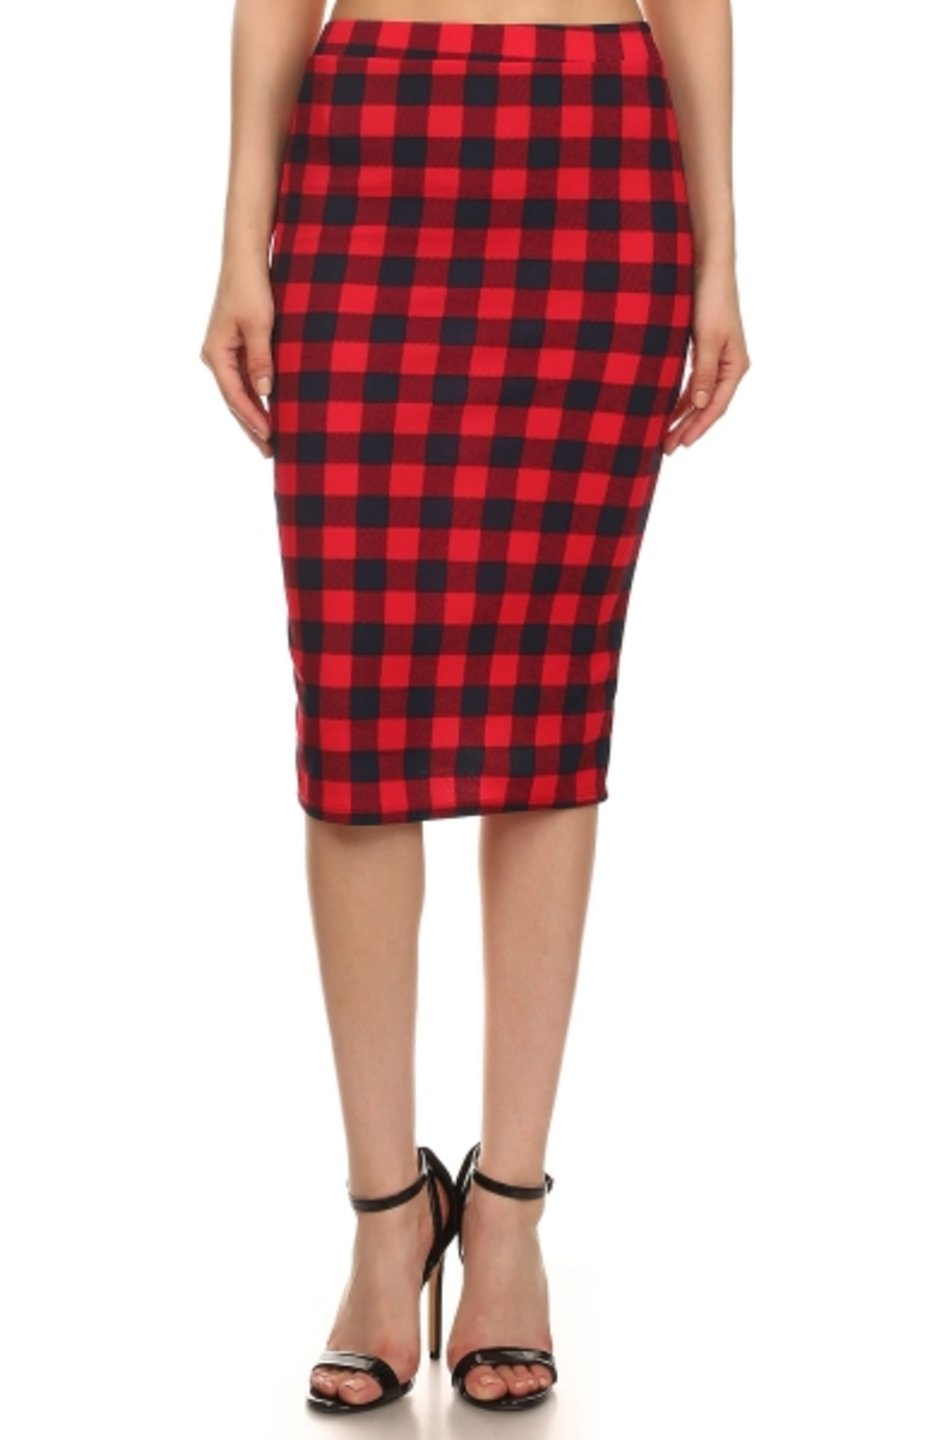 2LUV Plus Women's Dressy Professional Knee Length Pencil Skirt Red & Black 3XL (S170 PLA RD-X)